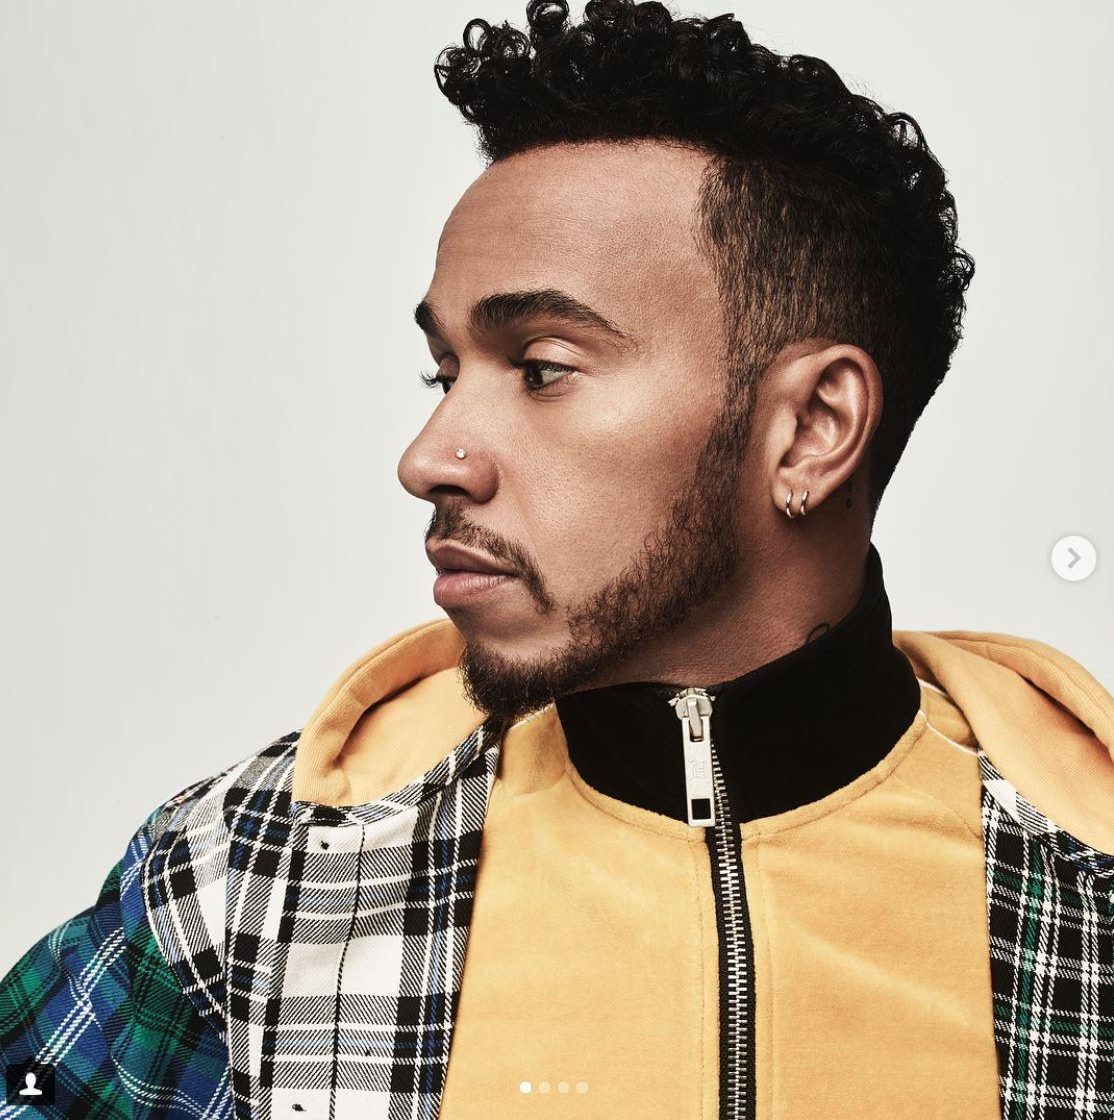 Check this out as Lewis Hamilton models his own line called TommyXLewis